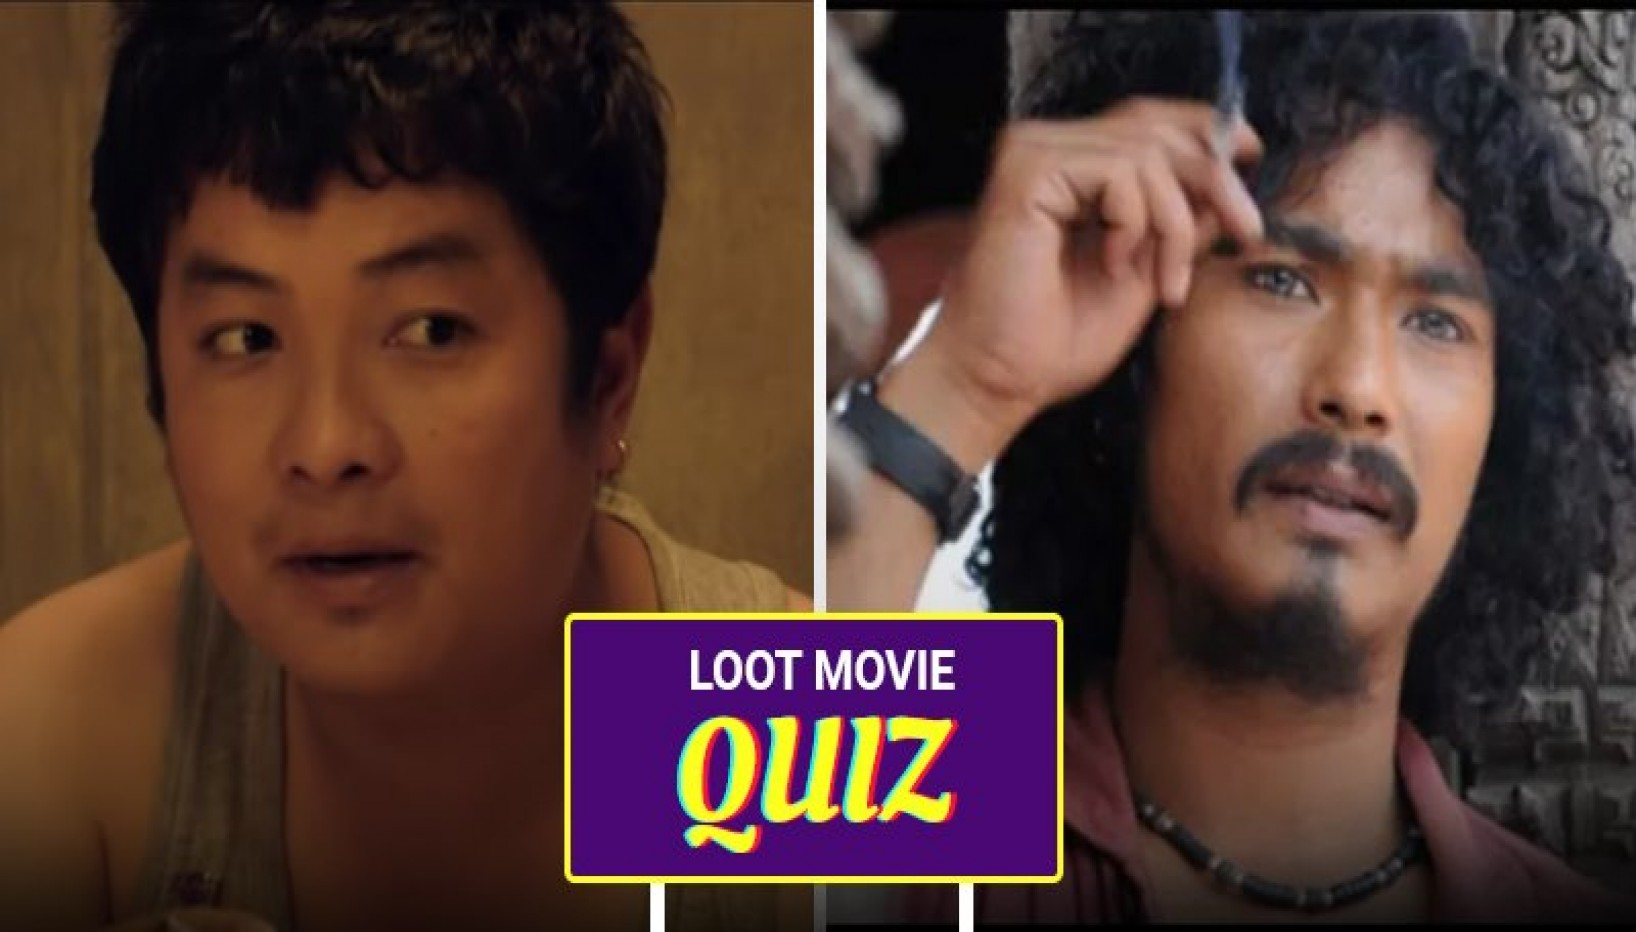 QUIZ: Only Haku Kale Can Score Full Marks In This Loot Movie Quiz